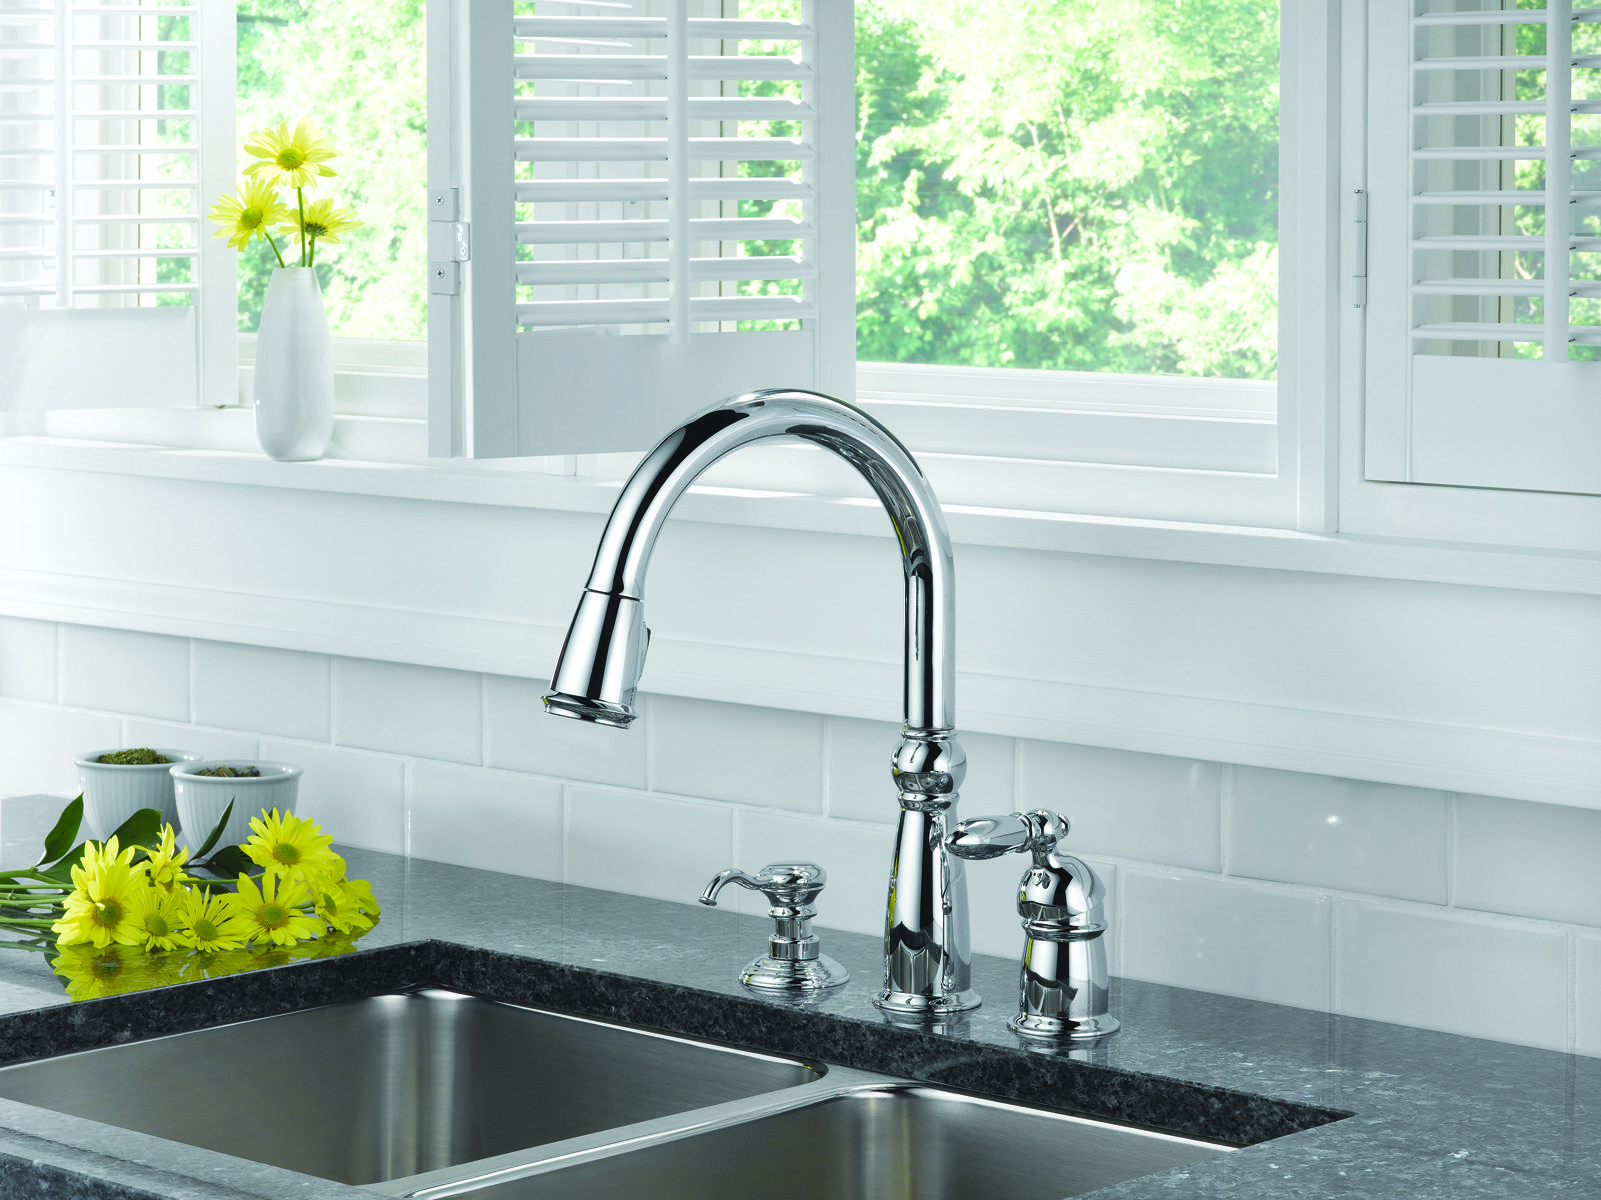 So shiny and new! Upgrade with this sleek and silver #faucet design ...